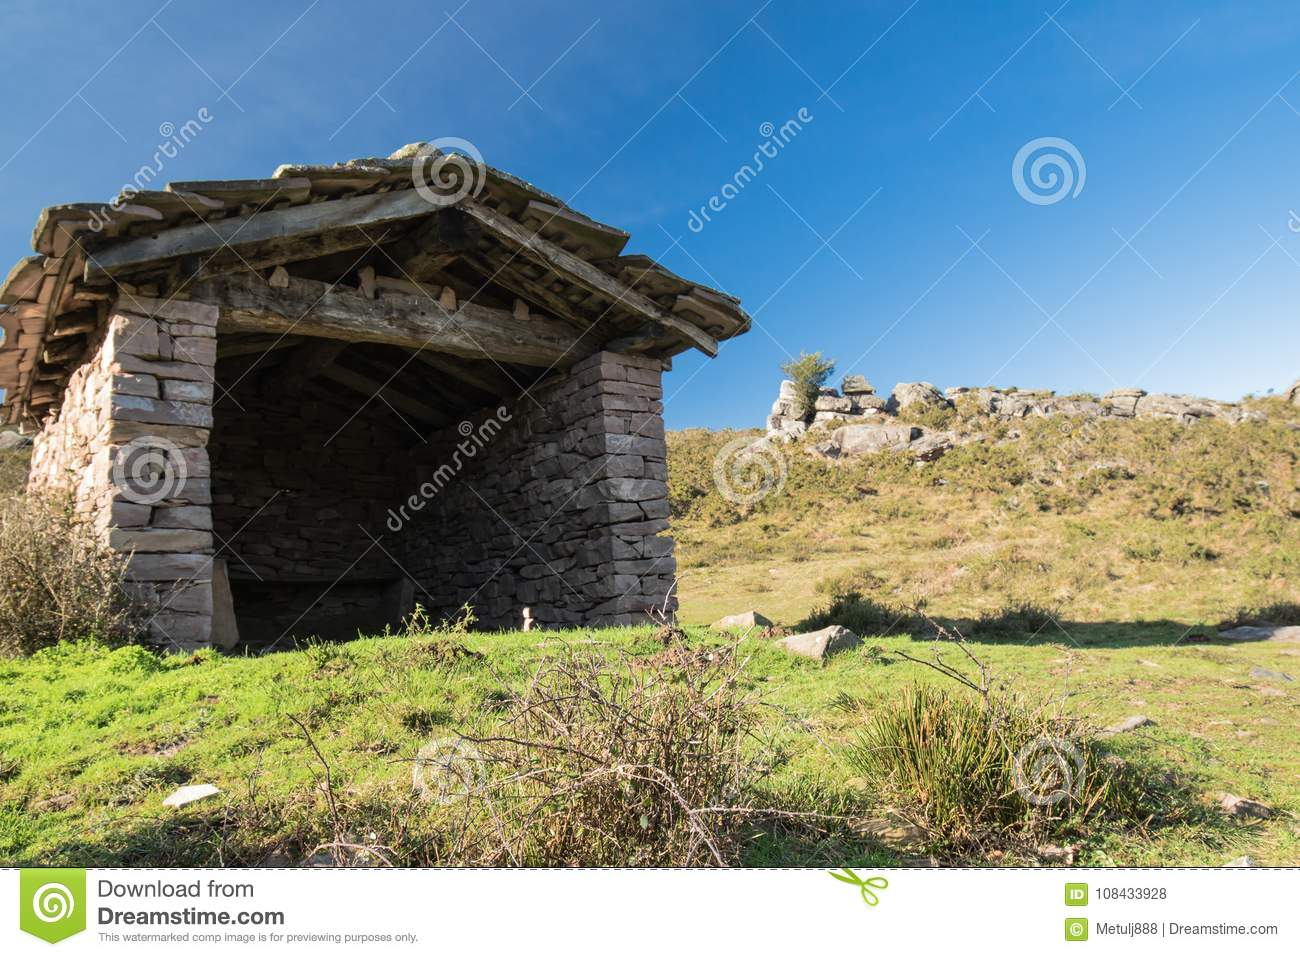 Download Close Up Ancient Beautiful Stone Sheep Barn In Countryside Mountains Basque Country France